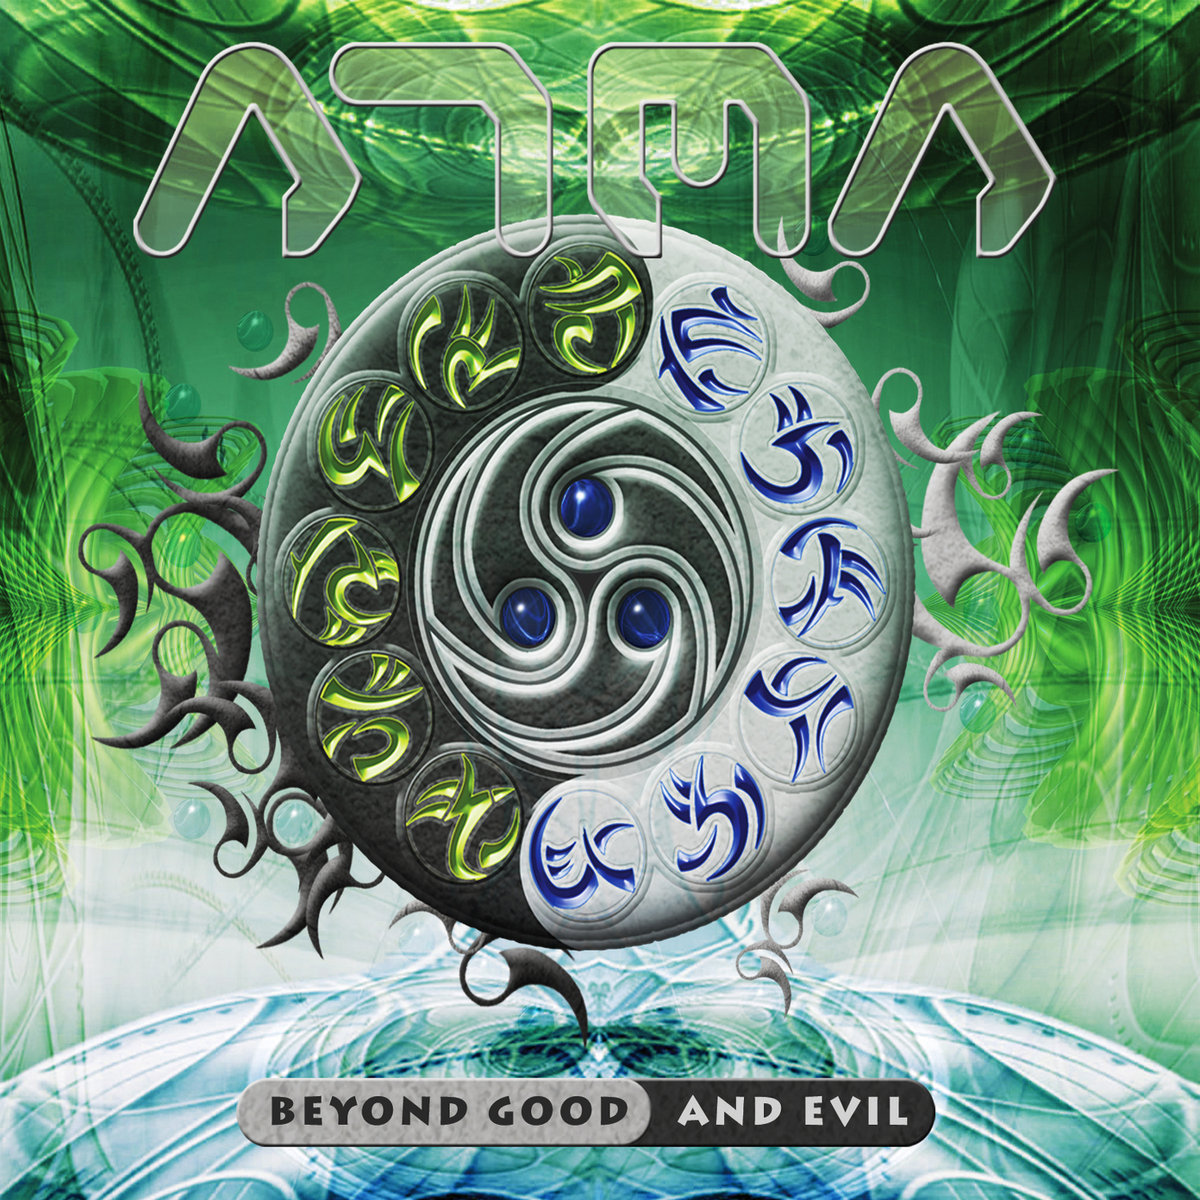 Atma - Beyond Good and Evil @ 'Beyond Good and Evil' album (electronic, goa)